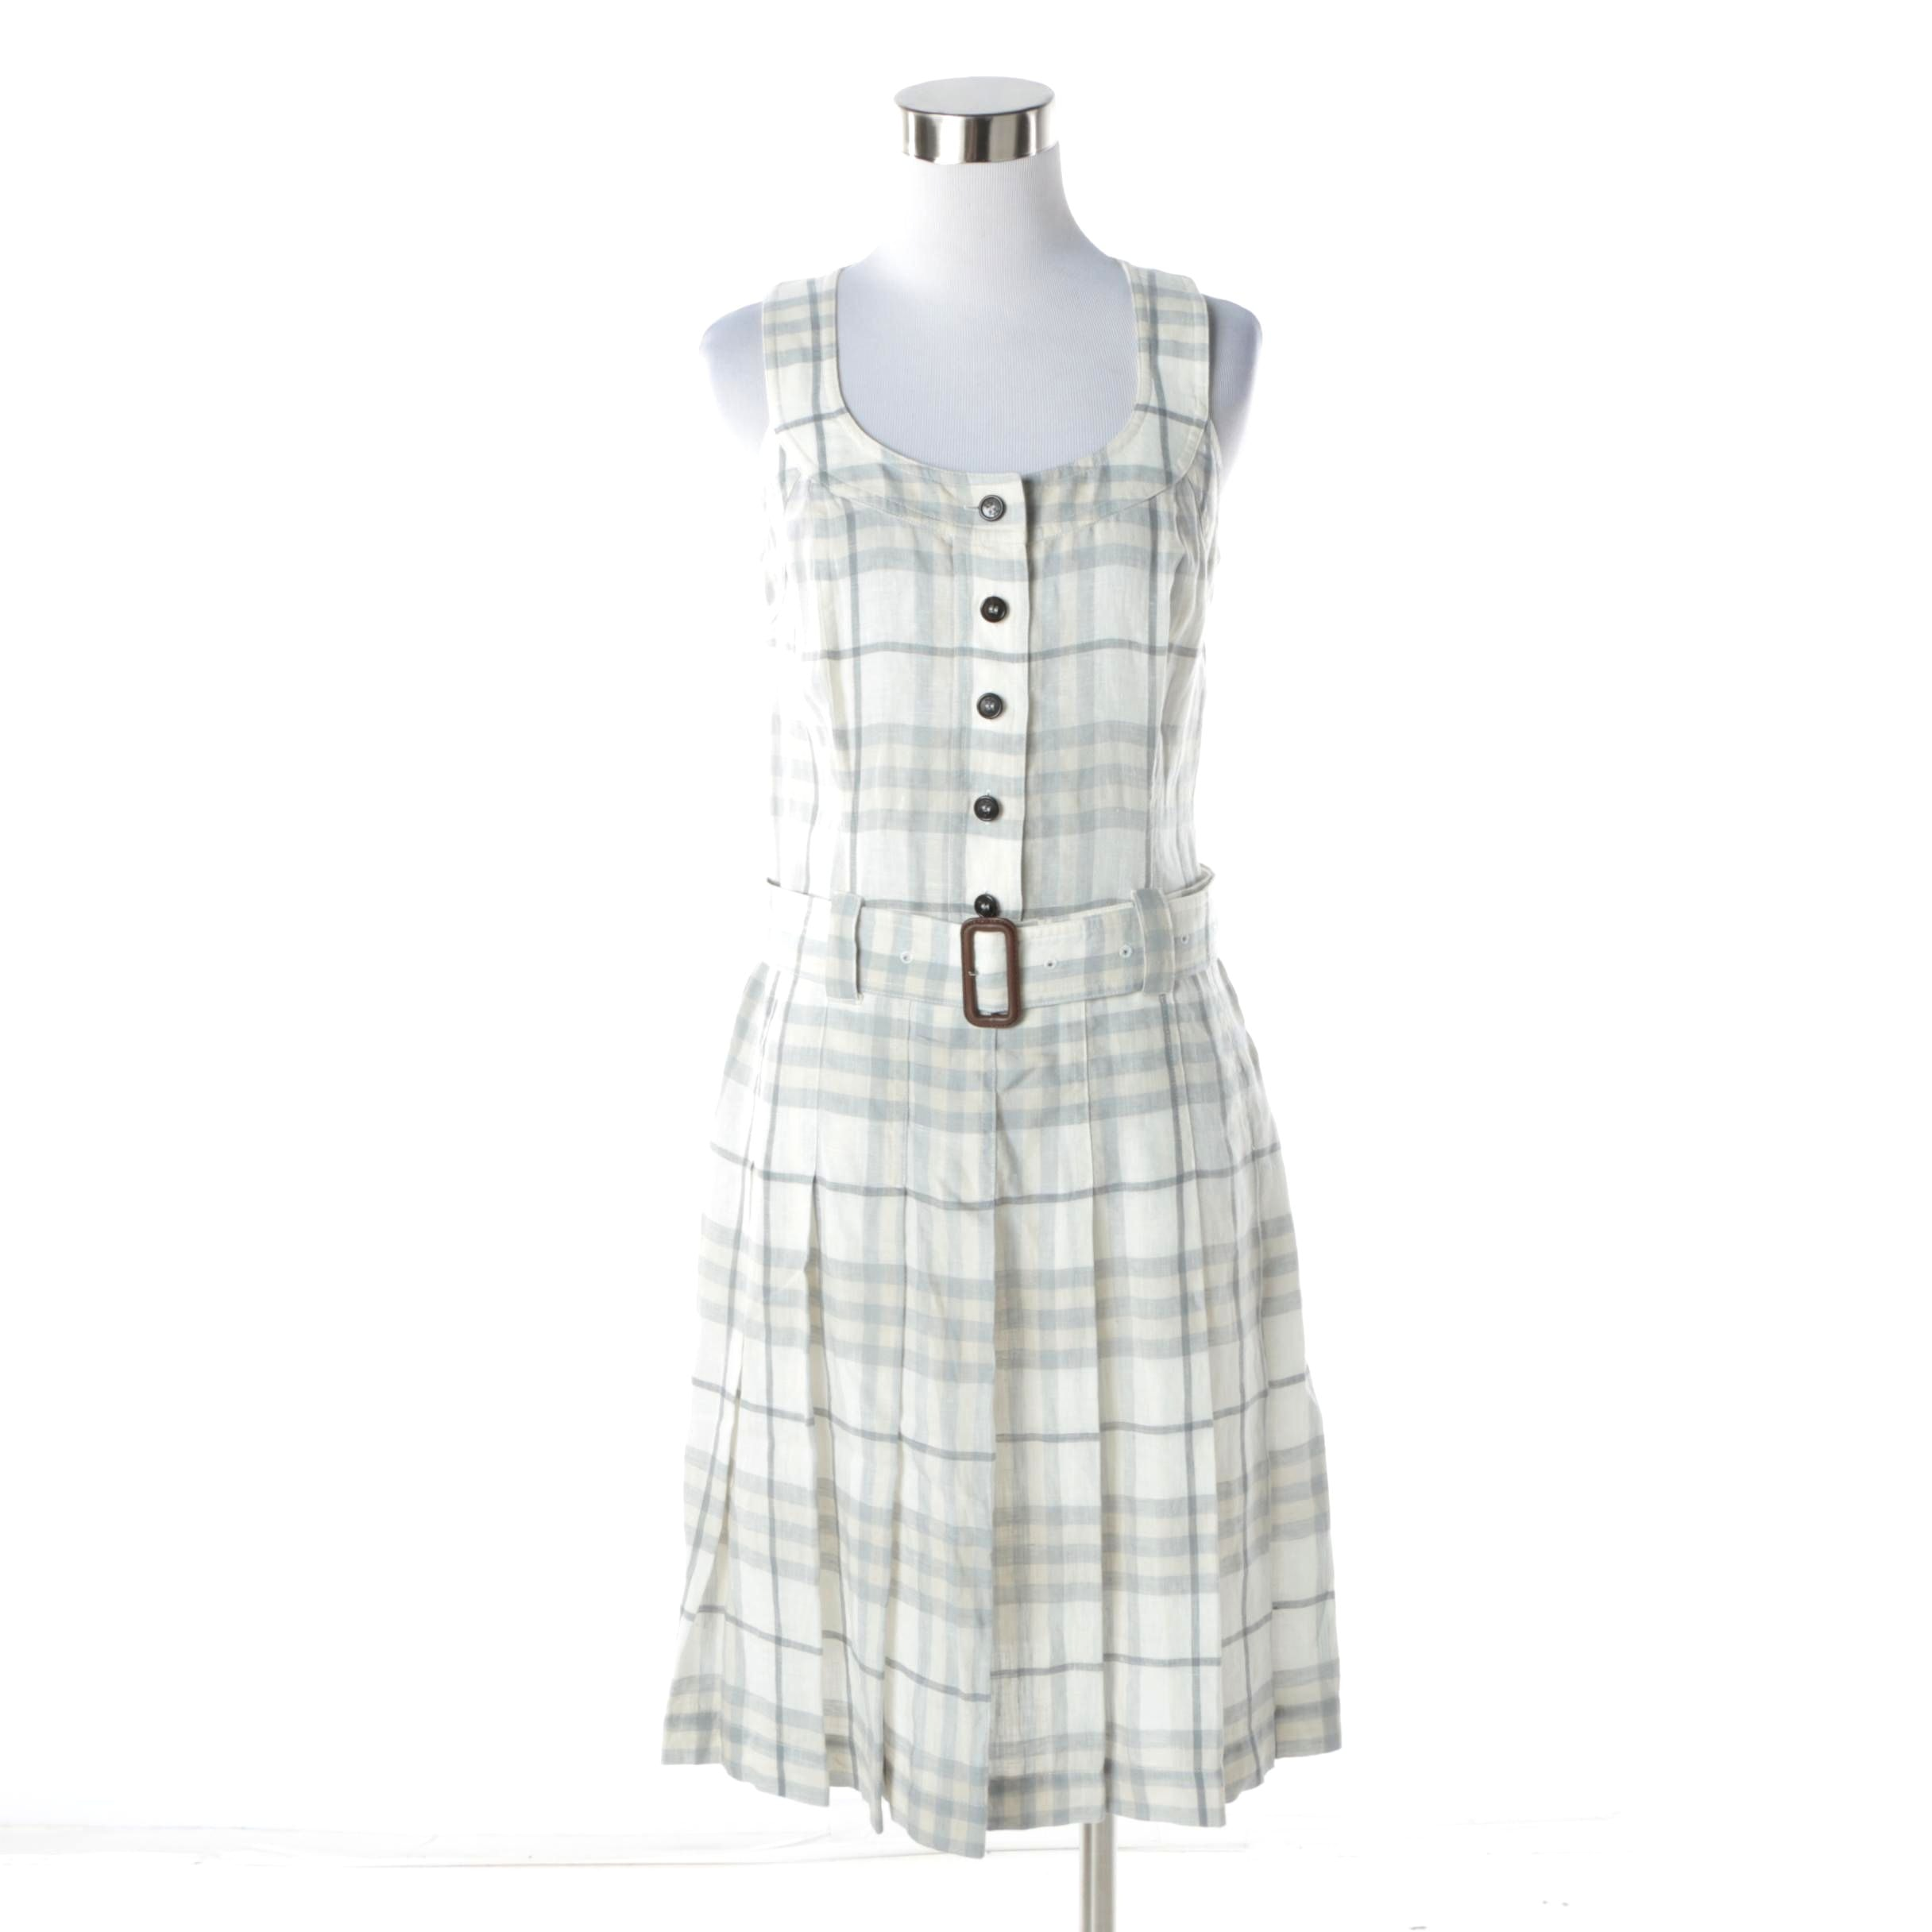 Women's Burberry London Plaid Linen Sleeveless Dress